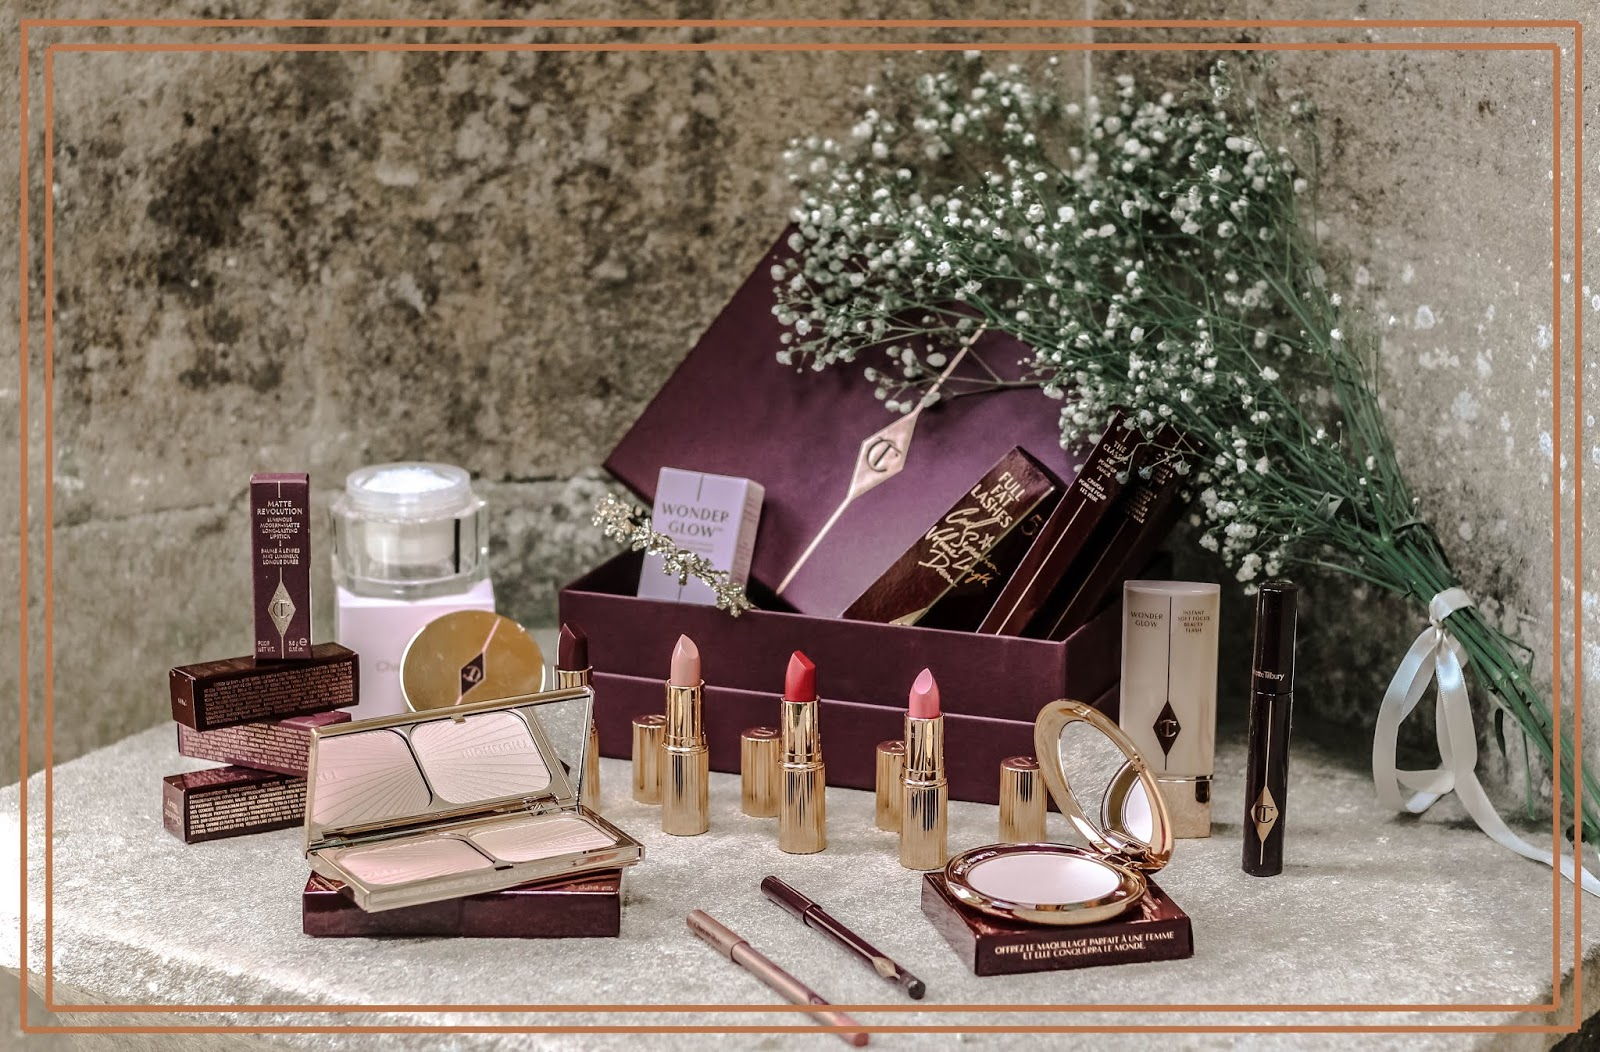 Charlotte Tilbury Haul Blog Review 2018